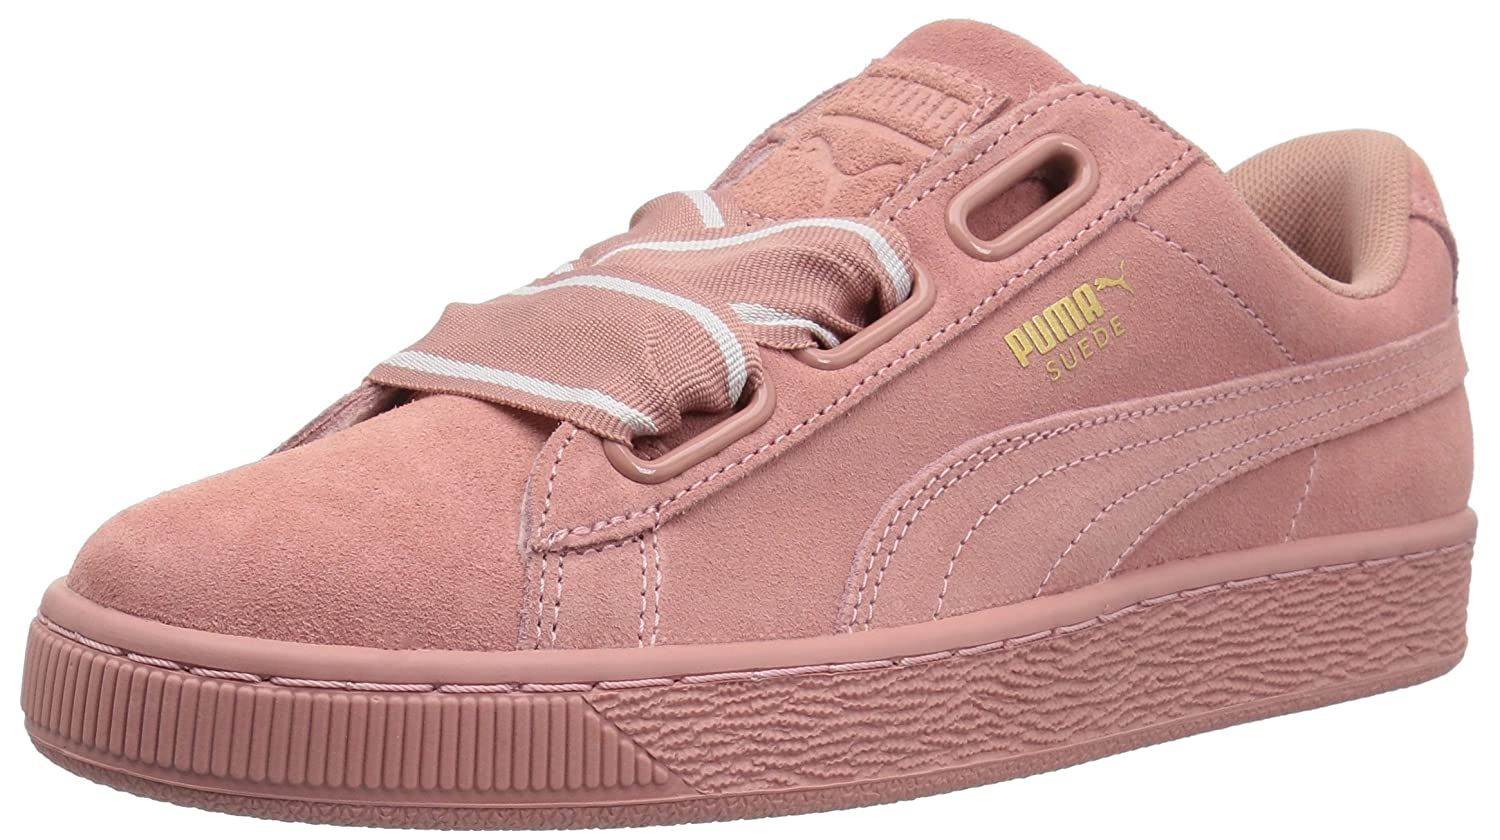 PUMA Women's Suede Heart Satin Wn Sneaker B0733VSMPG 5.5 M US|Cameo Brown-cameo Brown